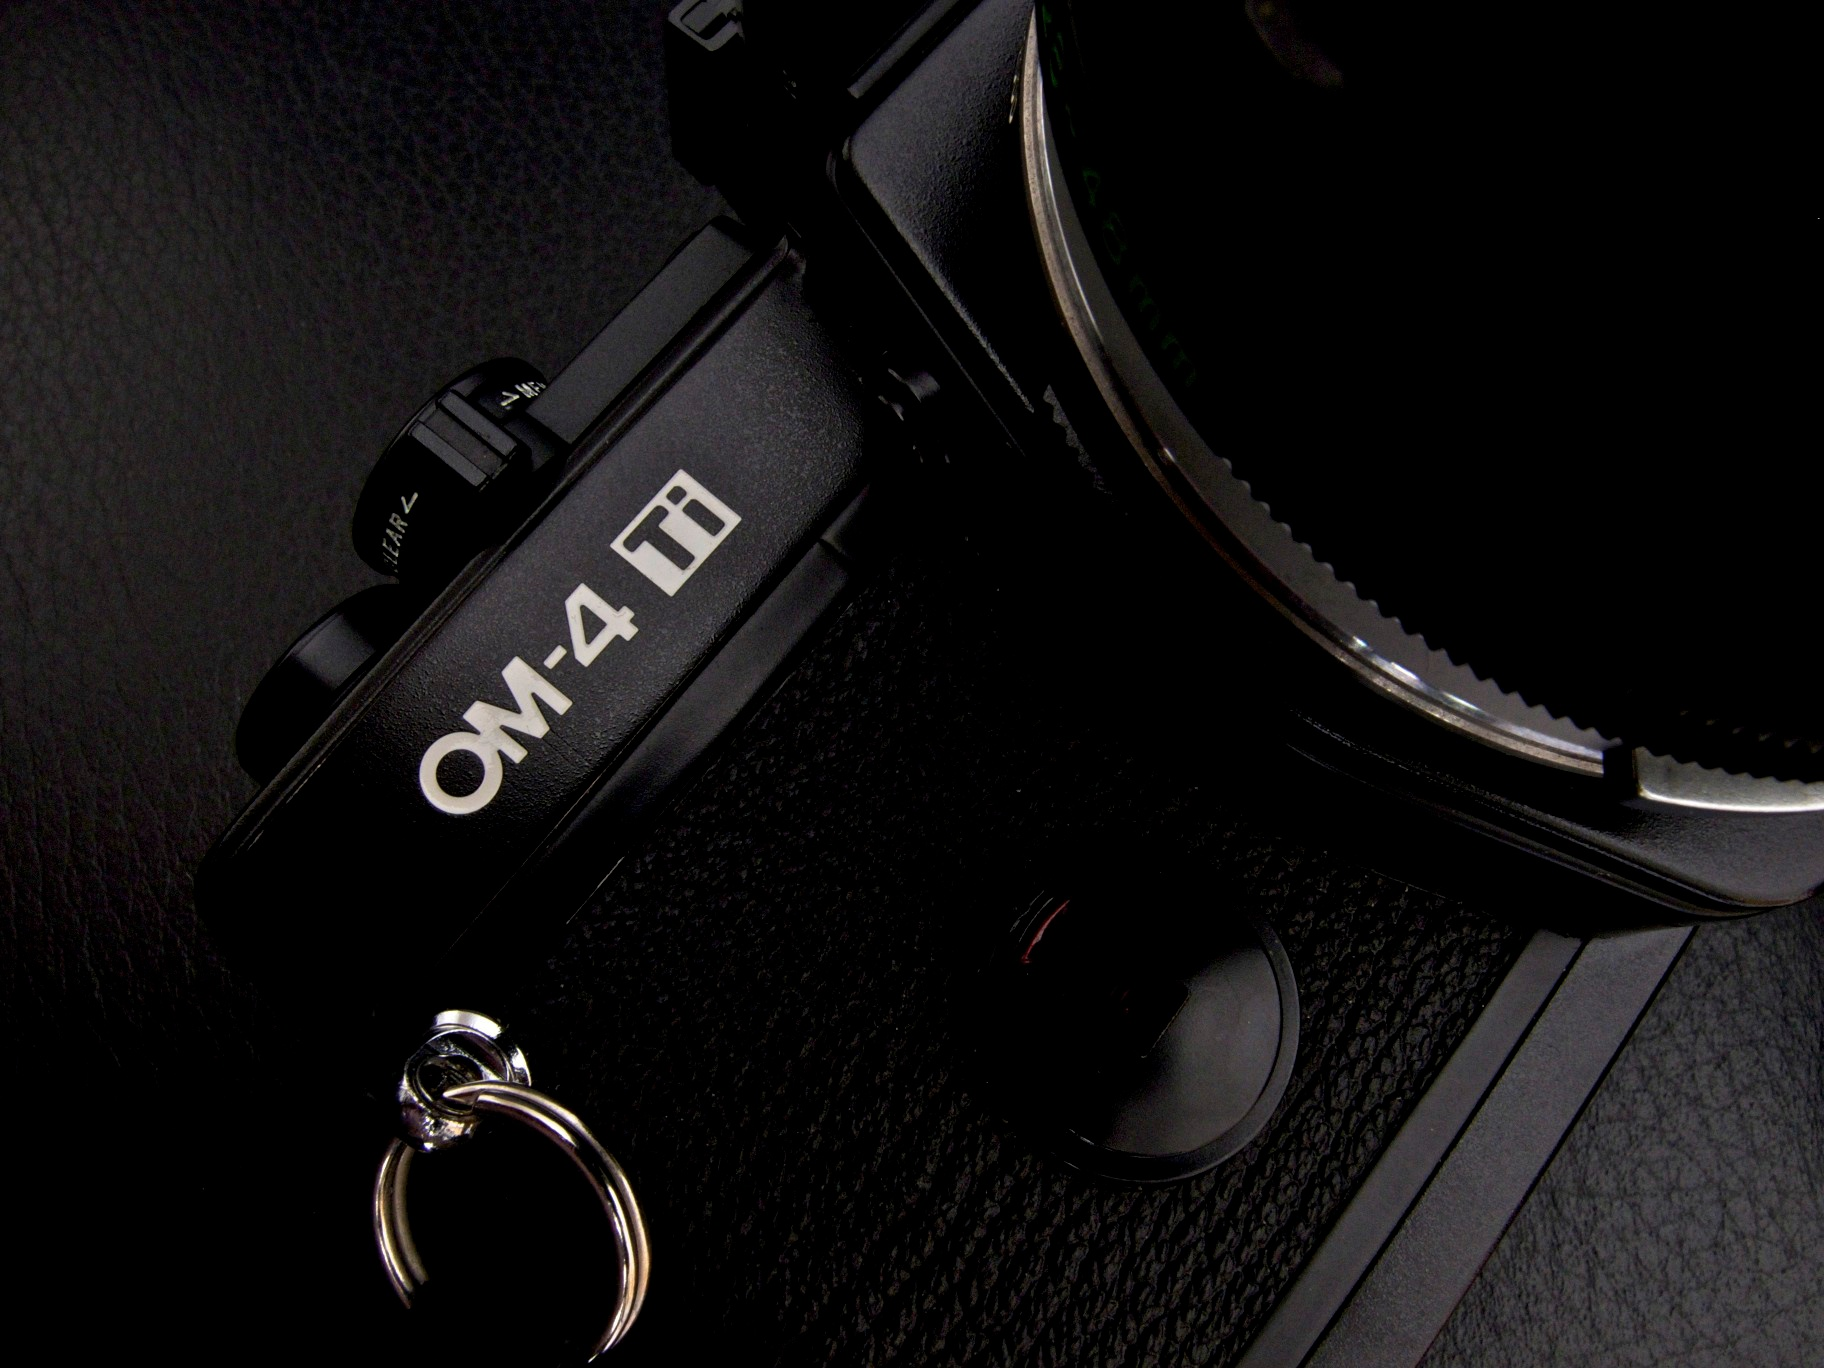 Overtaken first by autofocus cameras and ultimately by Digital, the manual spot-metering OM-4Ti is now regarded as 'one of the finest SLR's of its generation for the serious and purist film photographer' (Wikipedia)